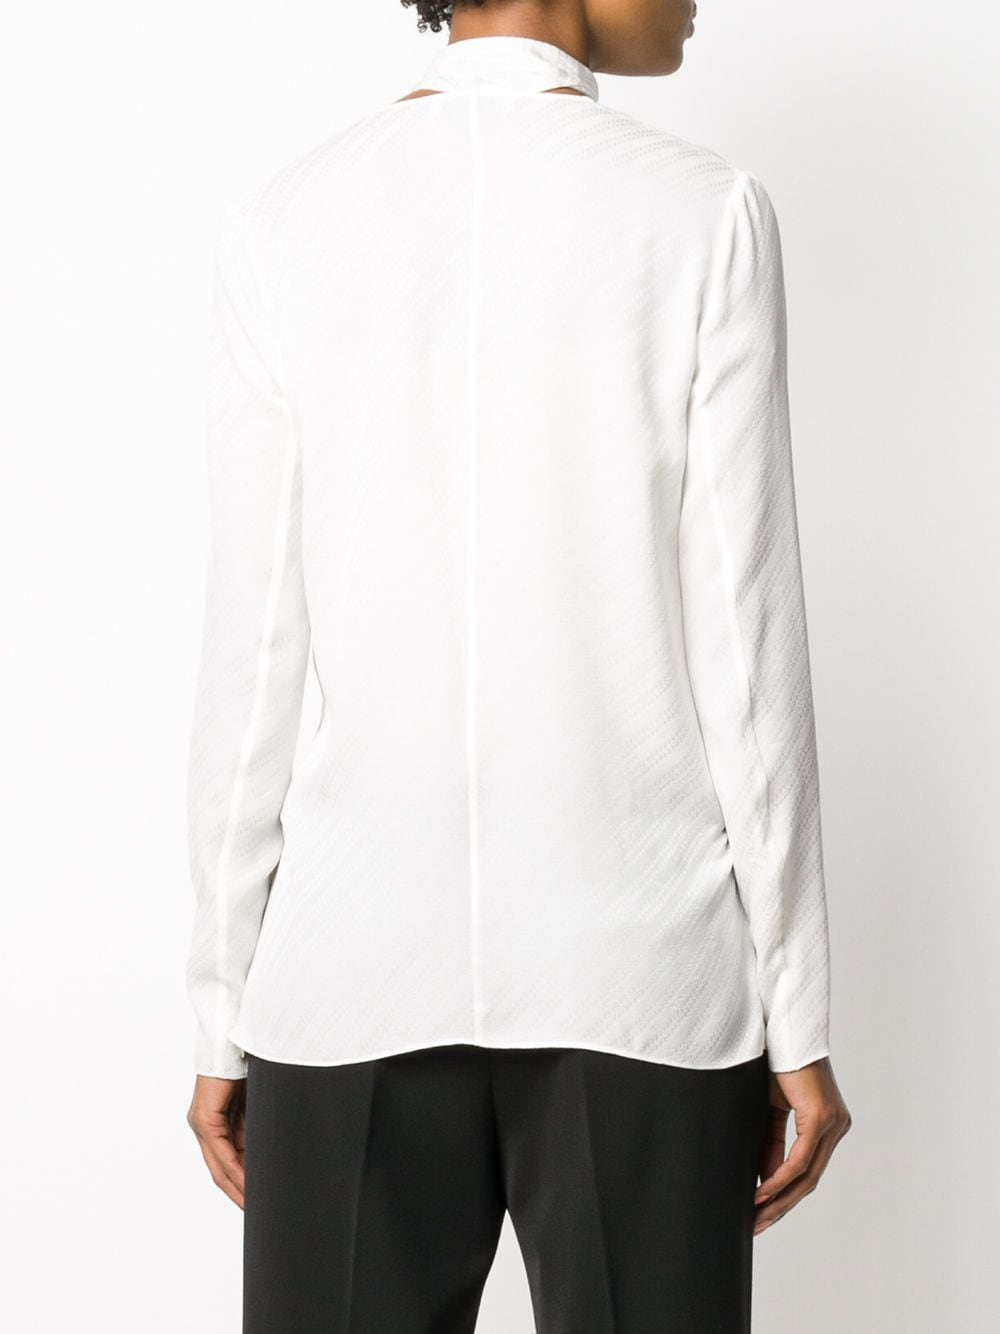 GIVENCHY Blouse GIVENCHY   Blouses   BW60KR12JB130